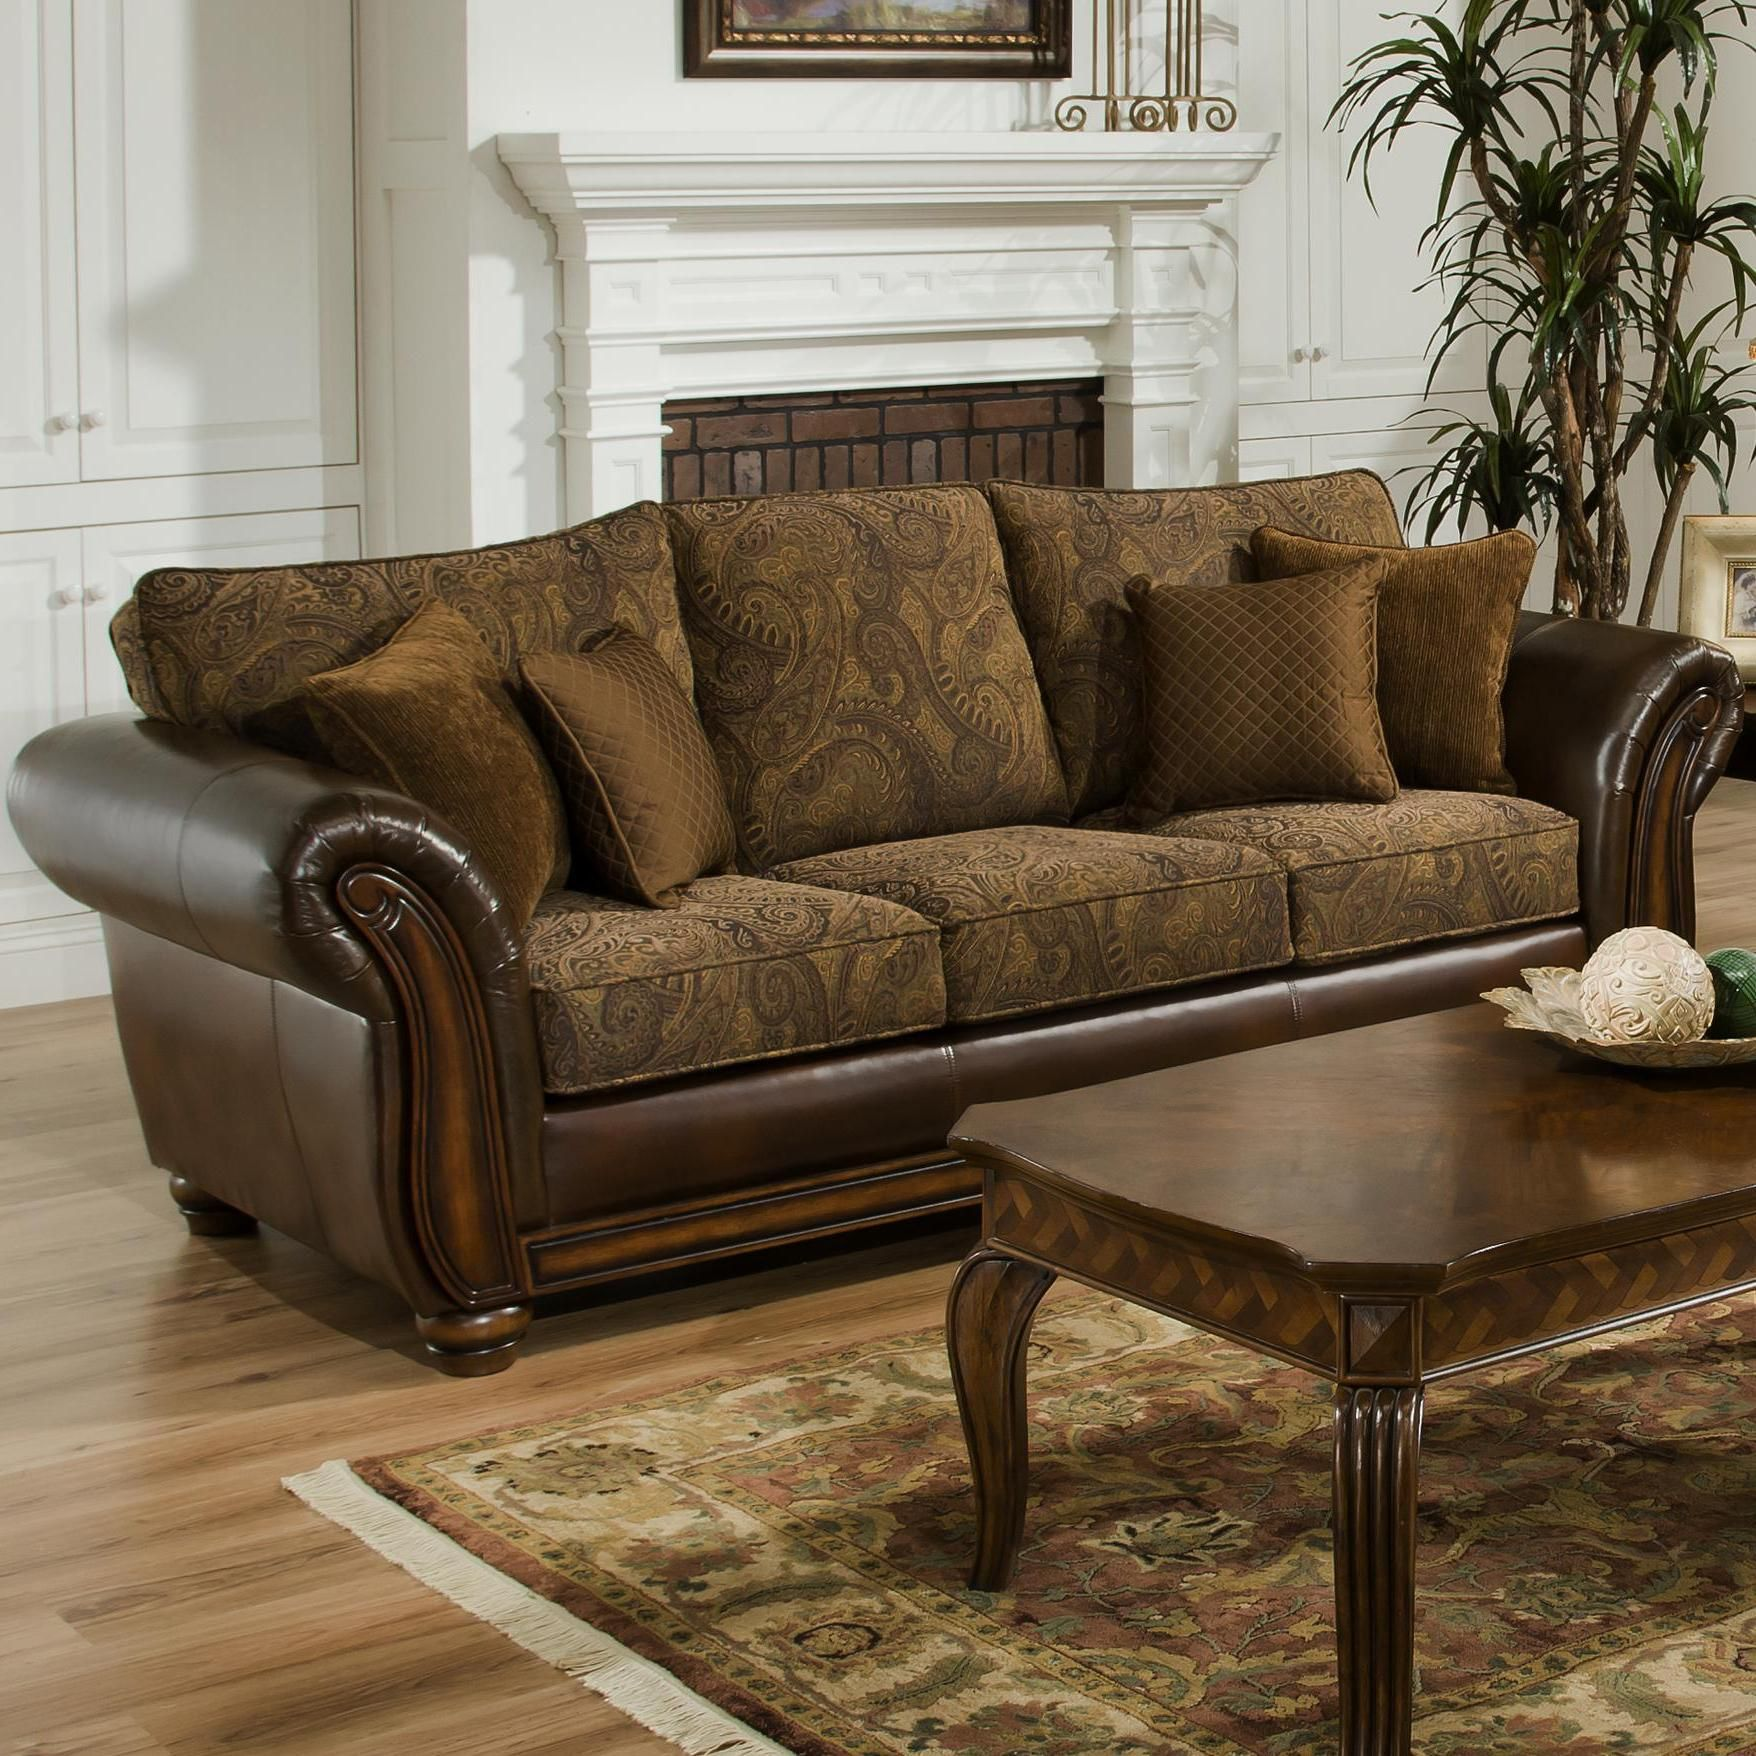 8104 Stationary Leather And Chenille Sofa By Simmons Upholstery At Royal Furniture